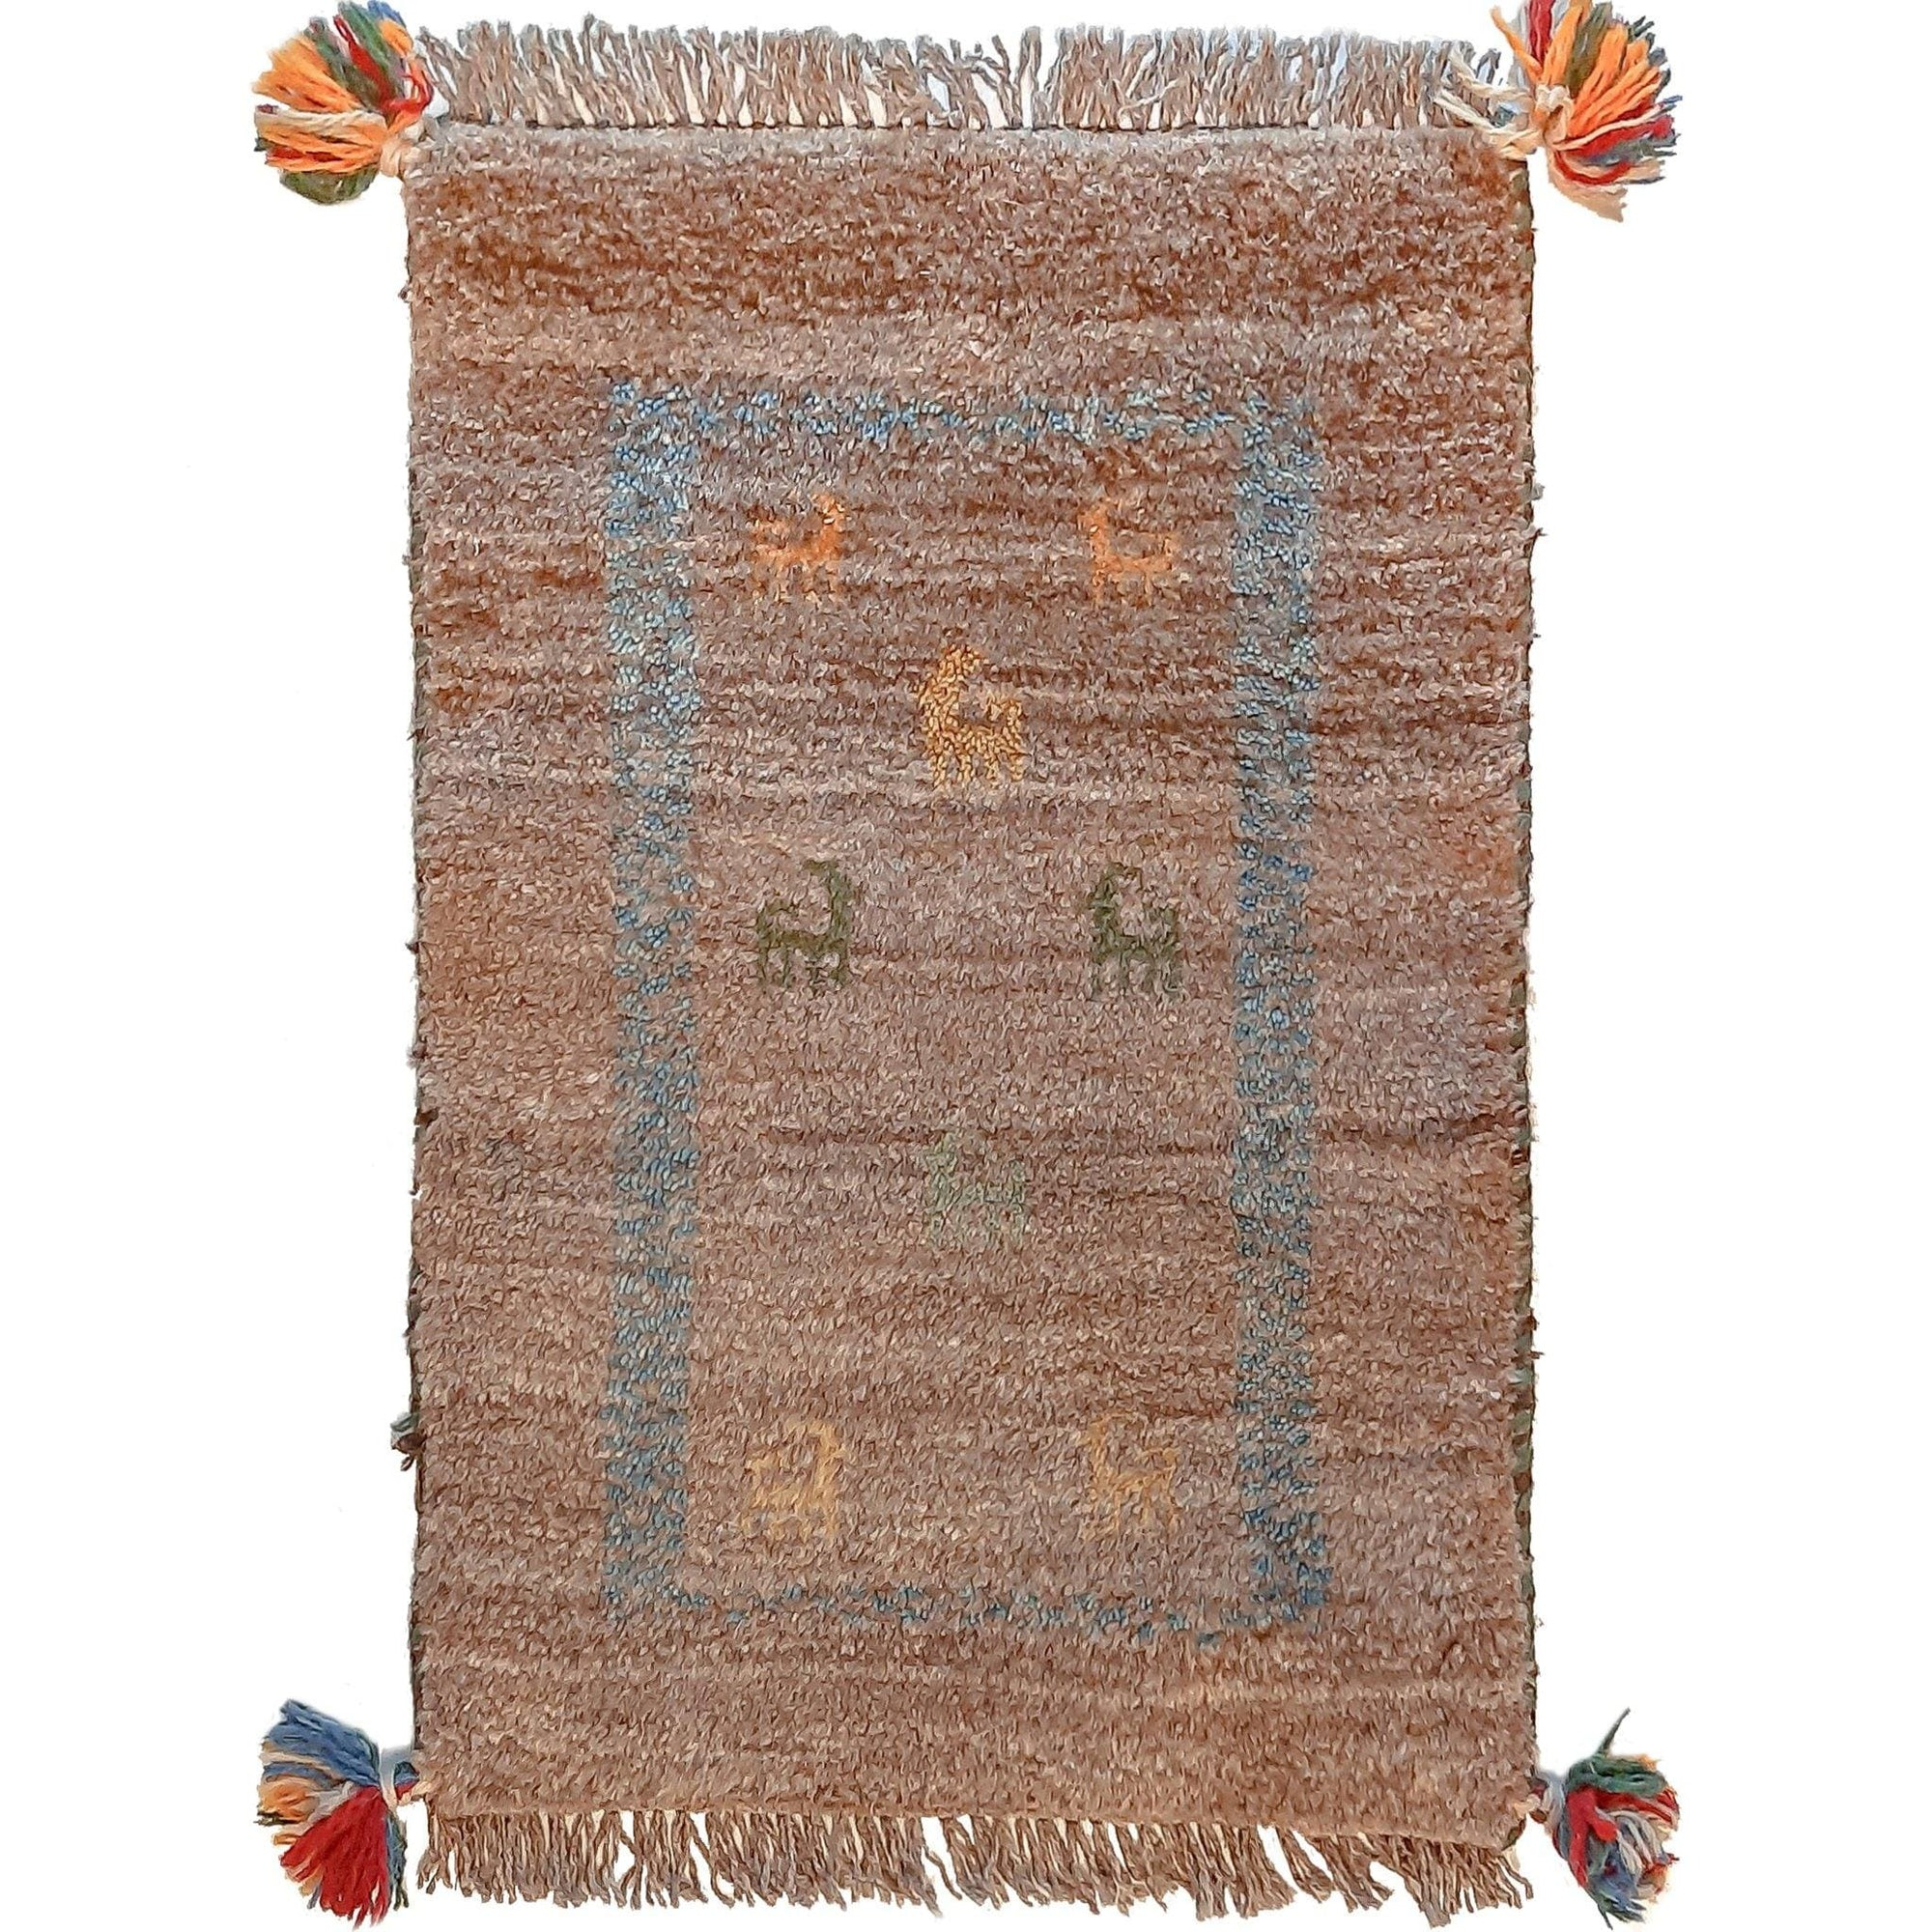 Hand-knotted Persian Gabbeh Extra Small Rug 40cm x 60cm Persian-Rug | House-of-Haghi | NewMarket | Auckland | NZ | Handmade Persian Rugs | Hand Knotted Persian Rugs